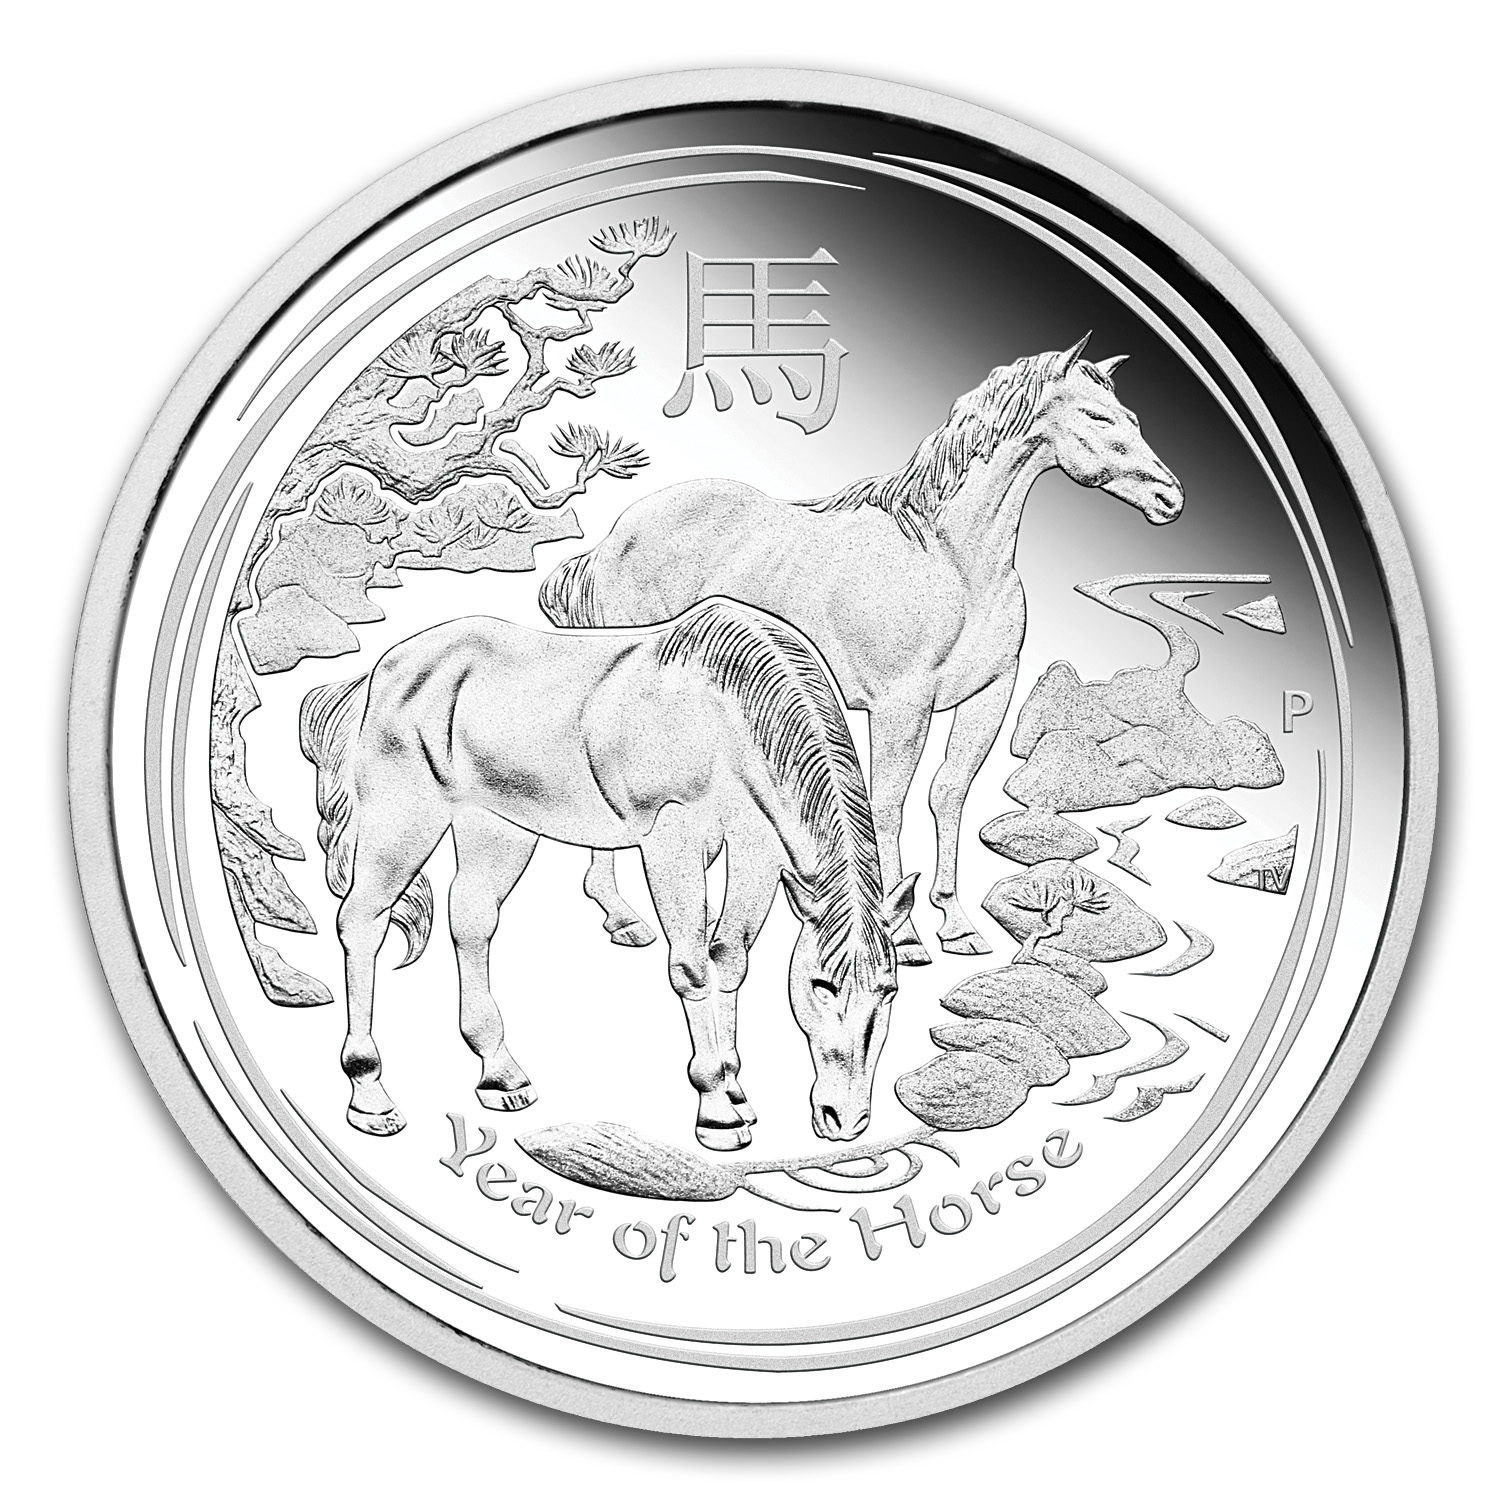 2014 1 oz Silver Year of the Horse (Proof)